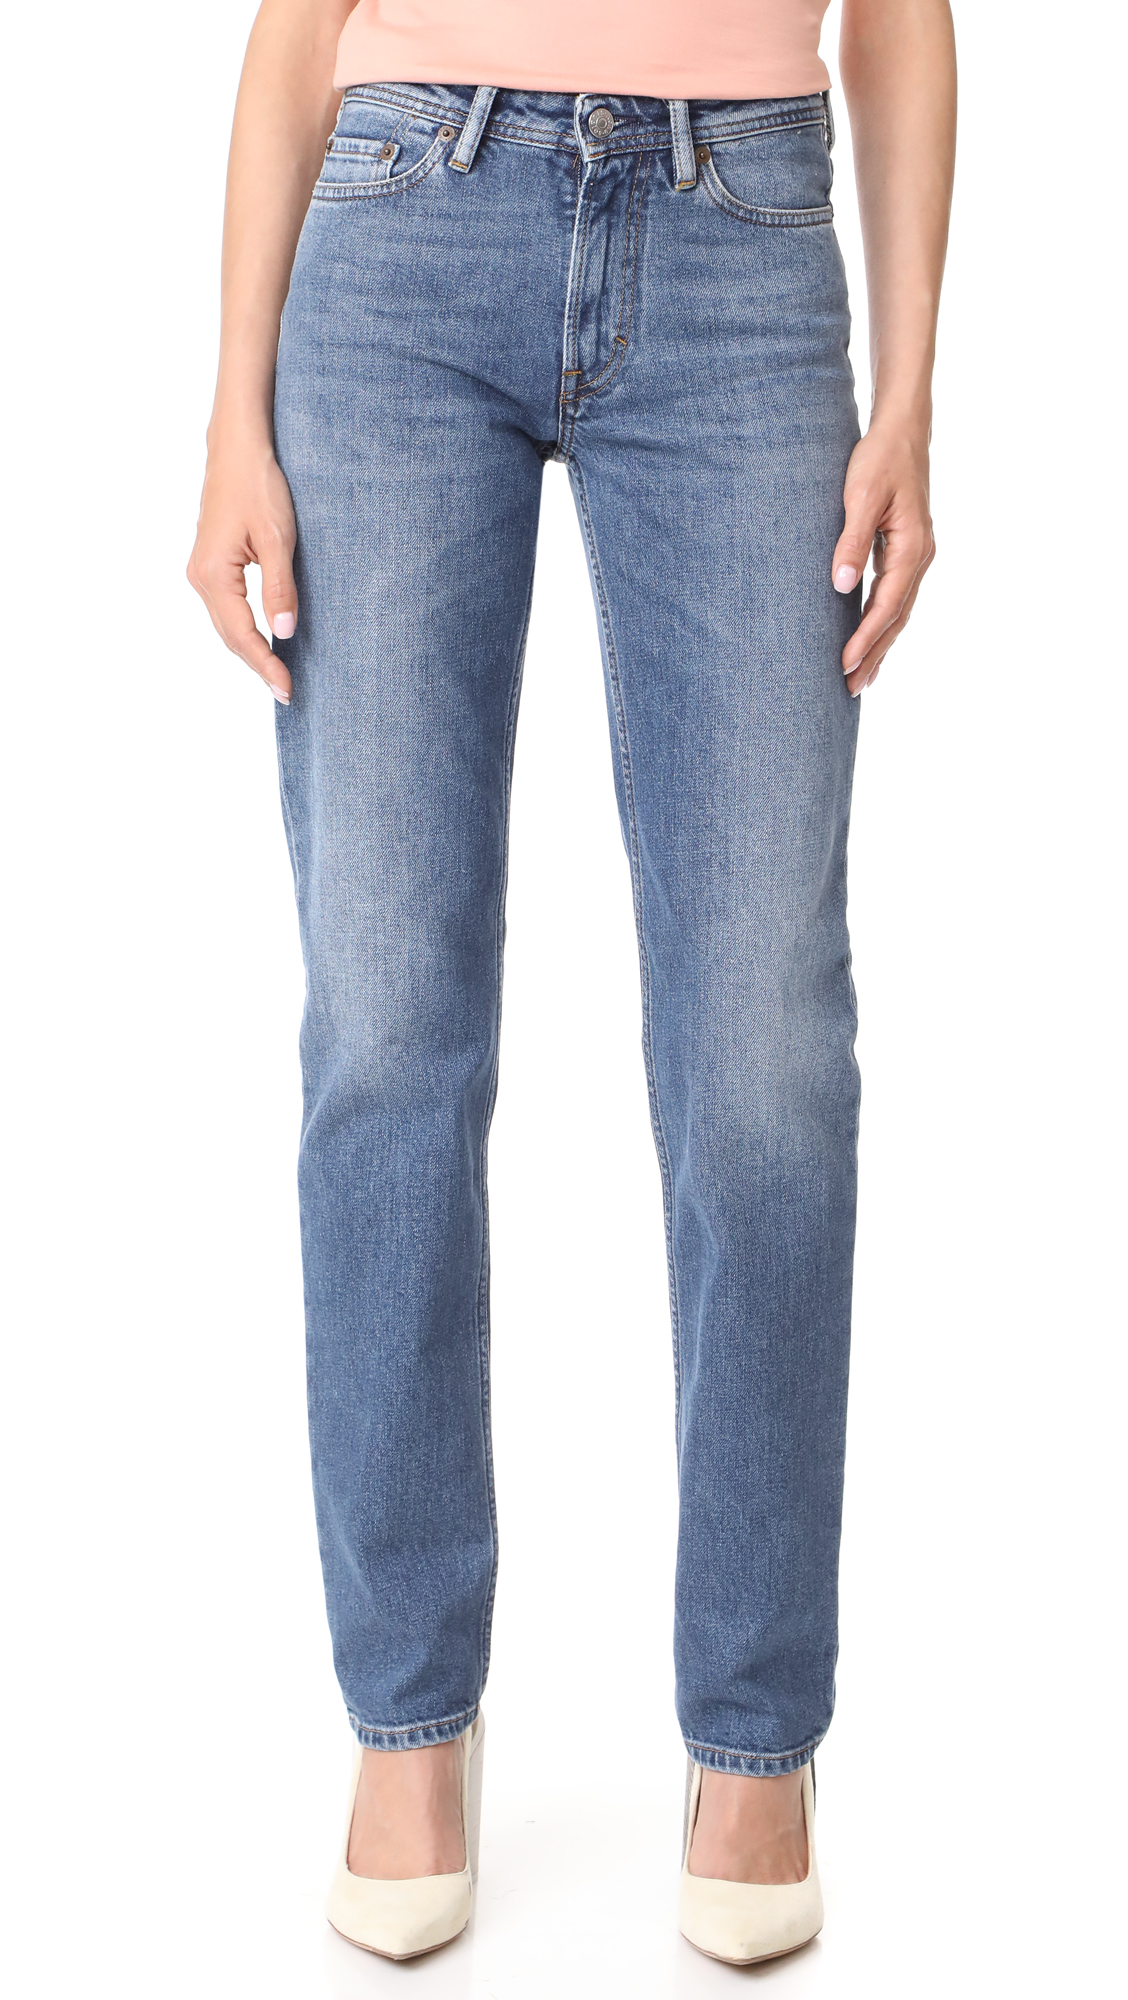 Acne Studios South Jeans - Mid Blue